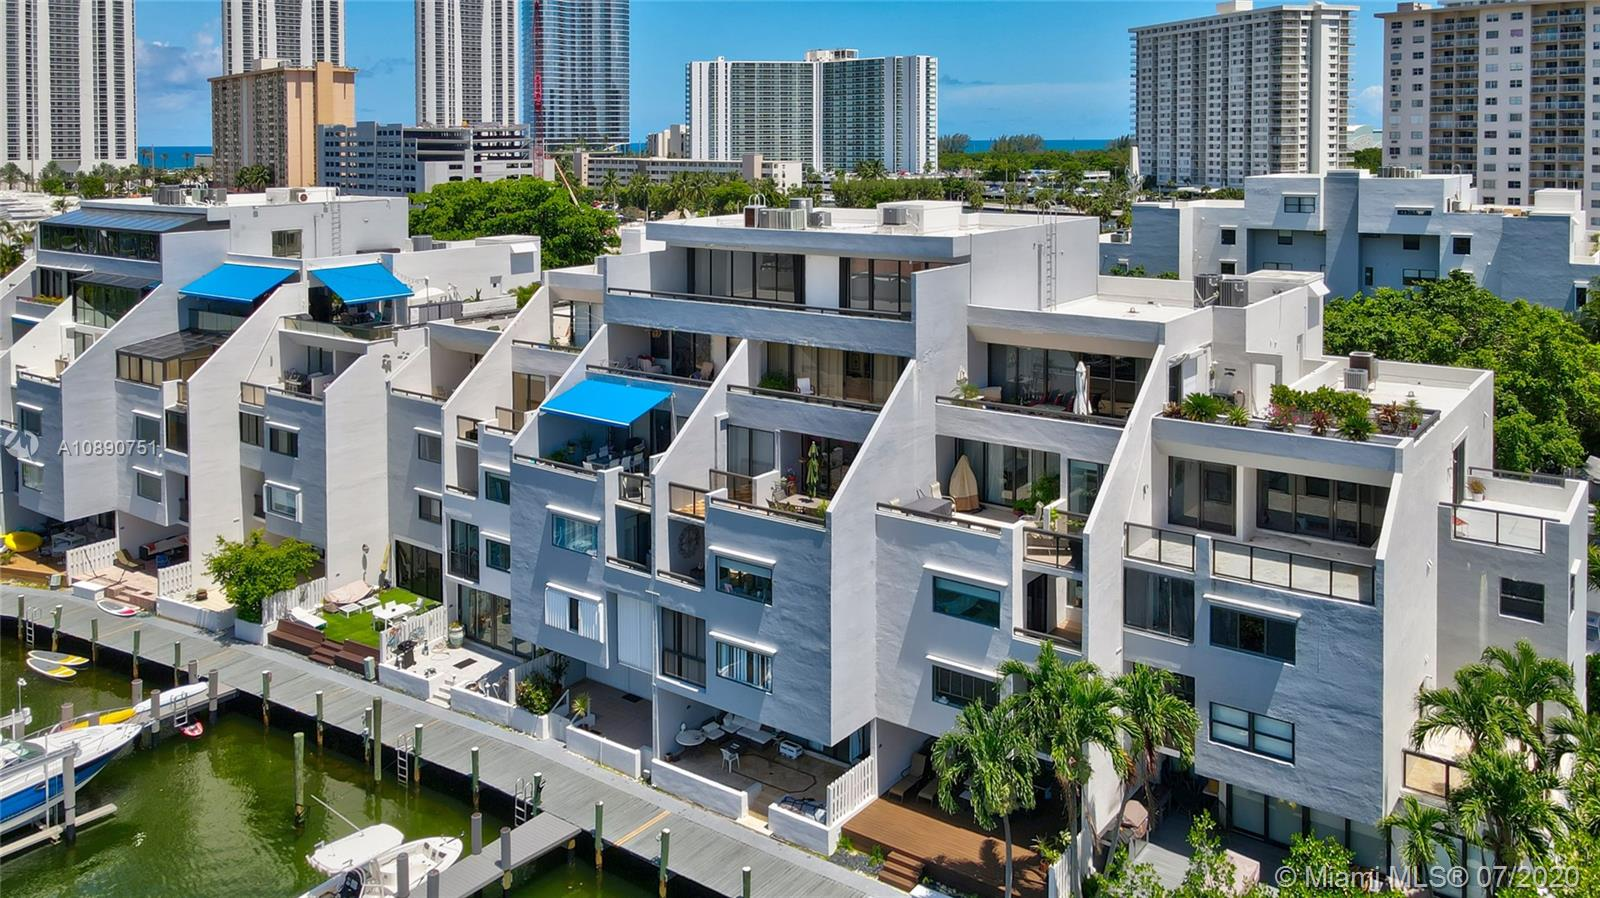 Photo of 425 Poinciana Island Drive #1444, Sunny Isles Beach, Florida, 33160 - Aerial view of complex, PH unit is top unit above the closest boat dock on left side of island, PH 425